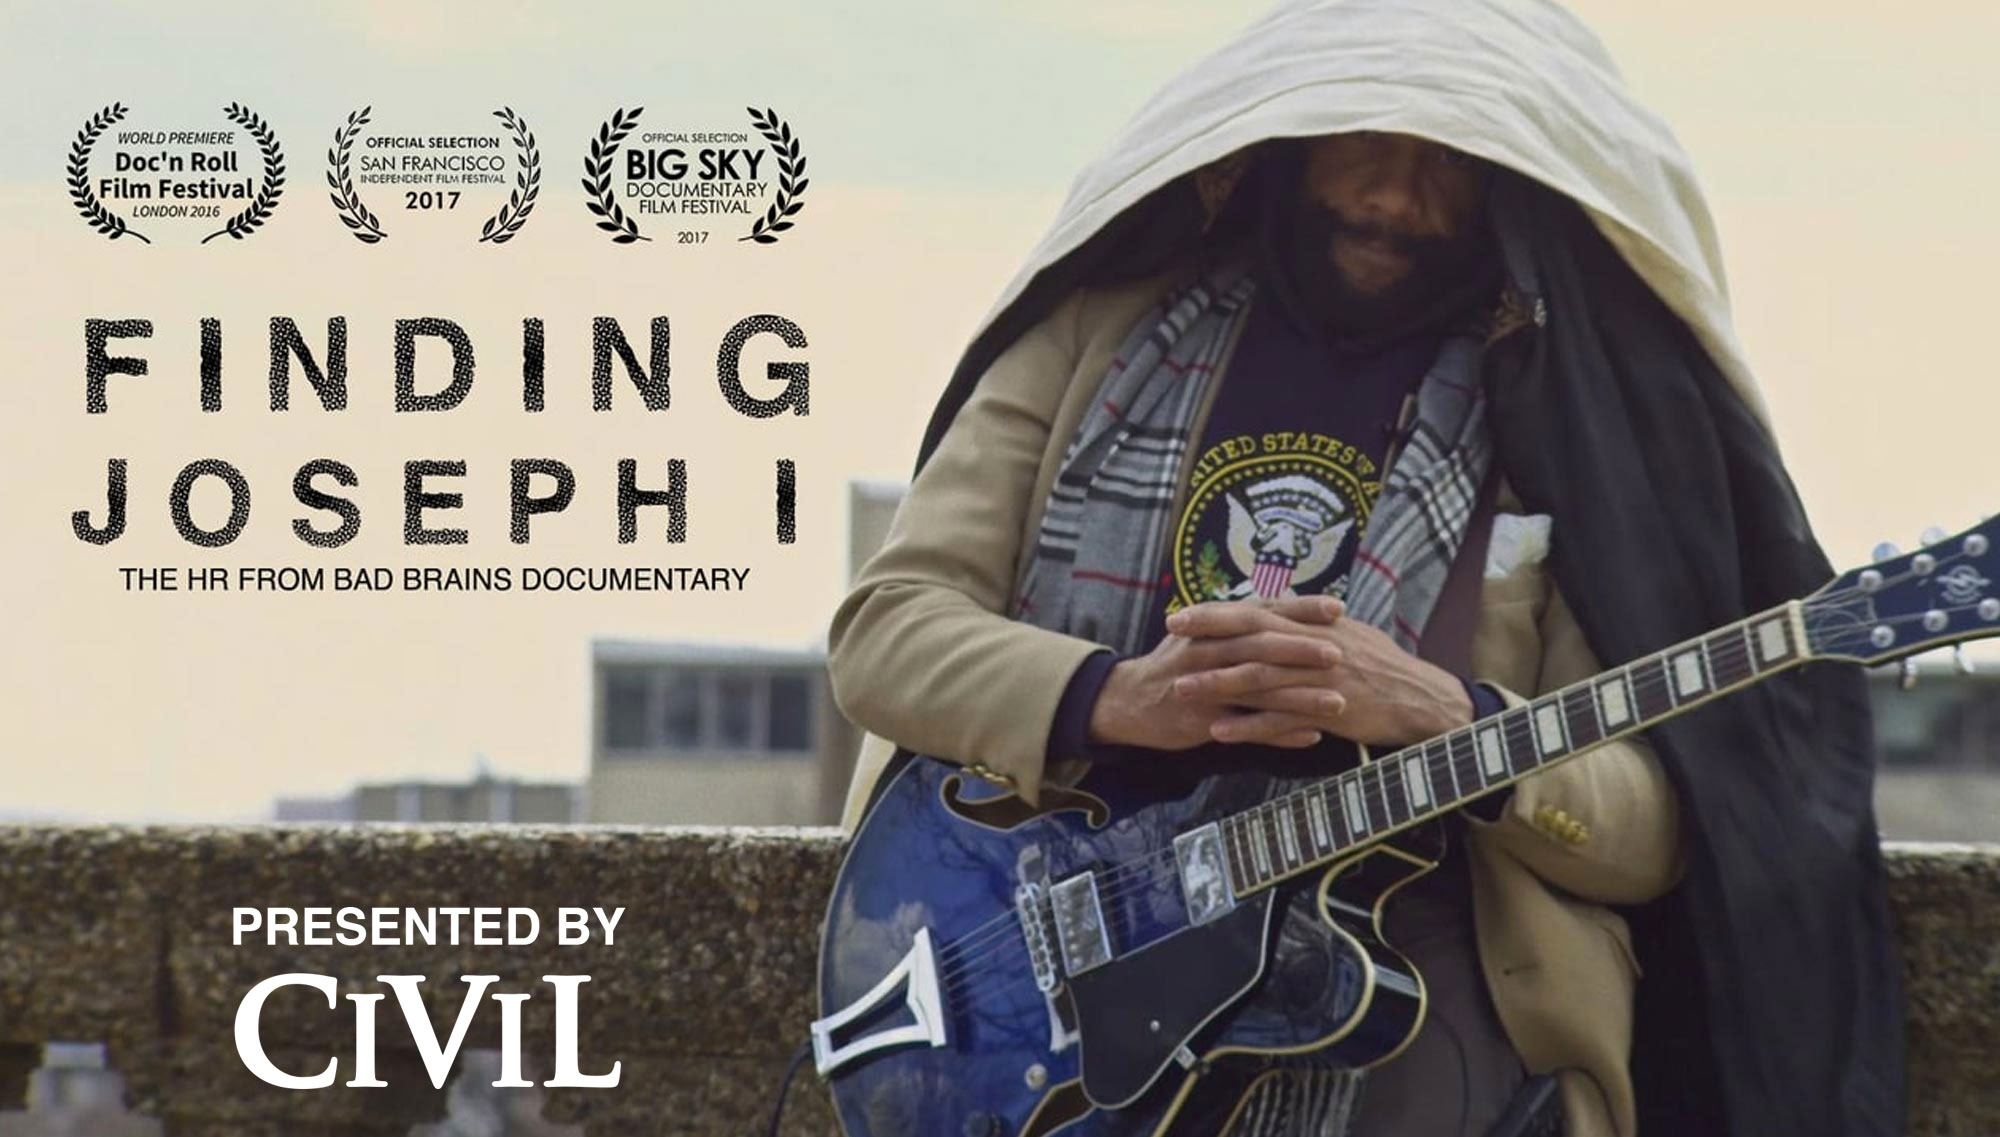 FINDING JOSEPH I  <h5>The HR from Bad Brains Documentary  </h5><h6>Presented by CIVIL  </h6>August 17